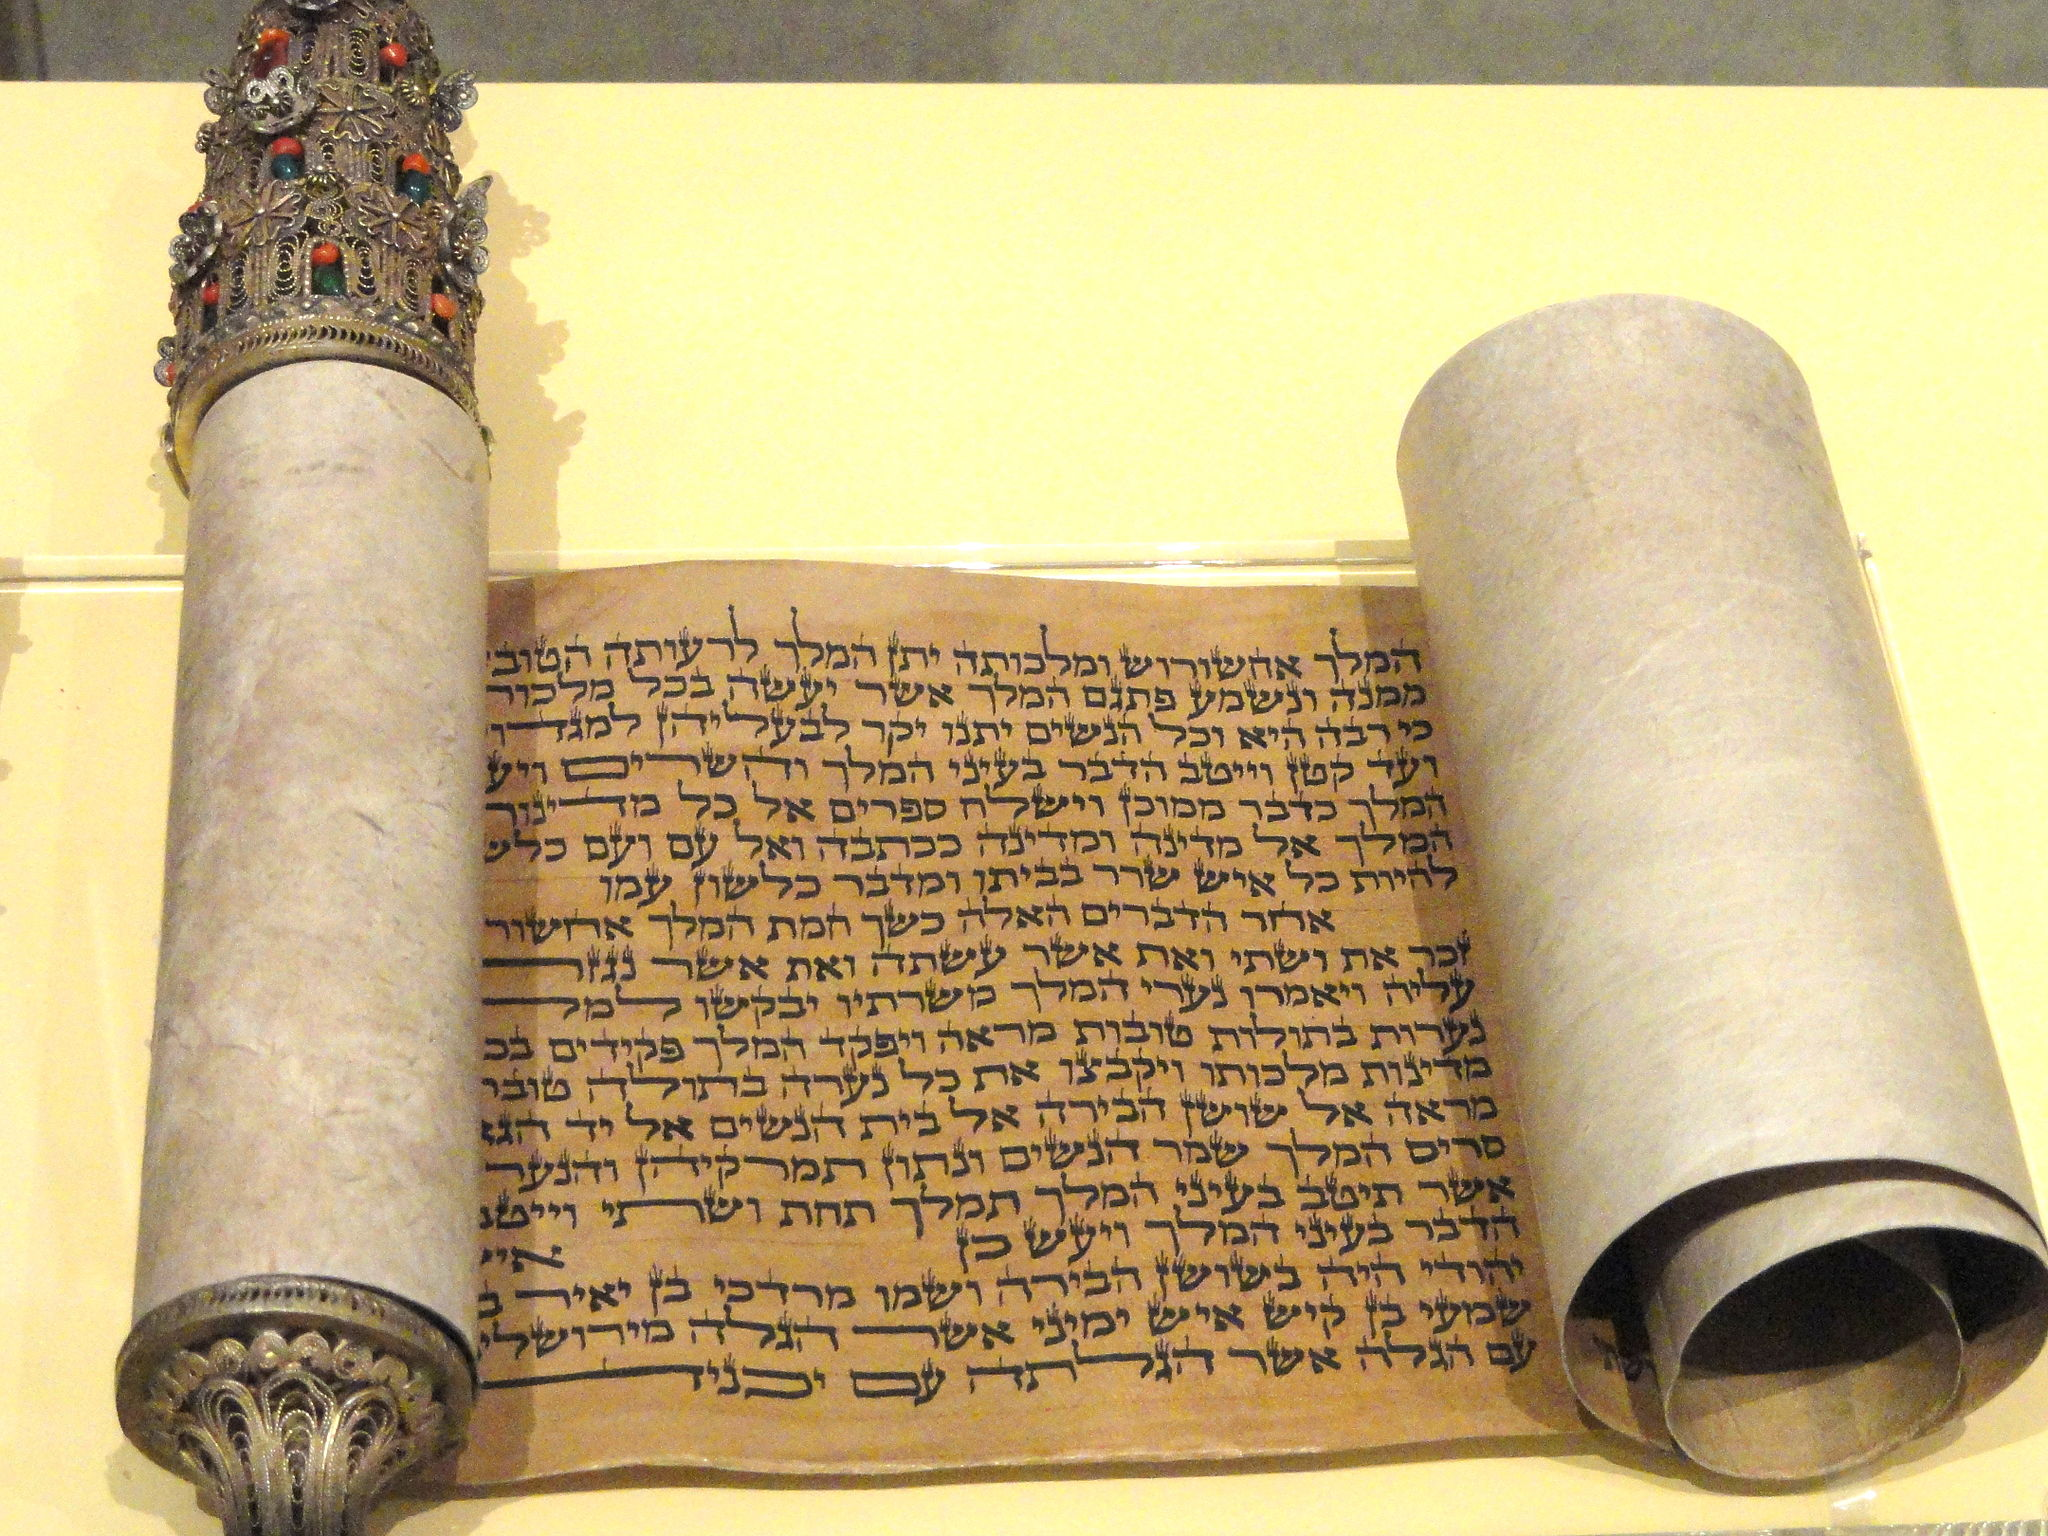 QODESH literature links - Feed your spirit and edify your mind with Qodesh Literature Written by REAL Hebrew scholars